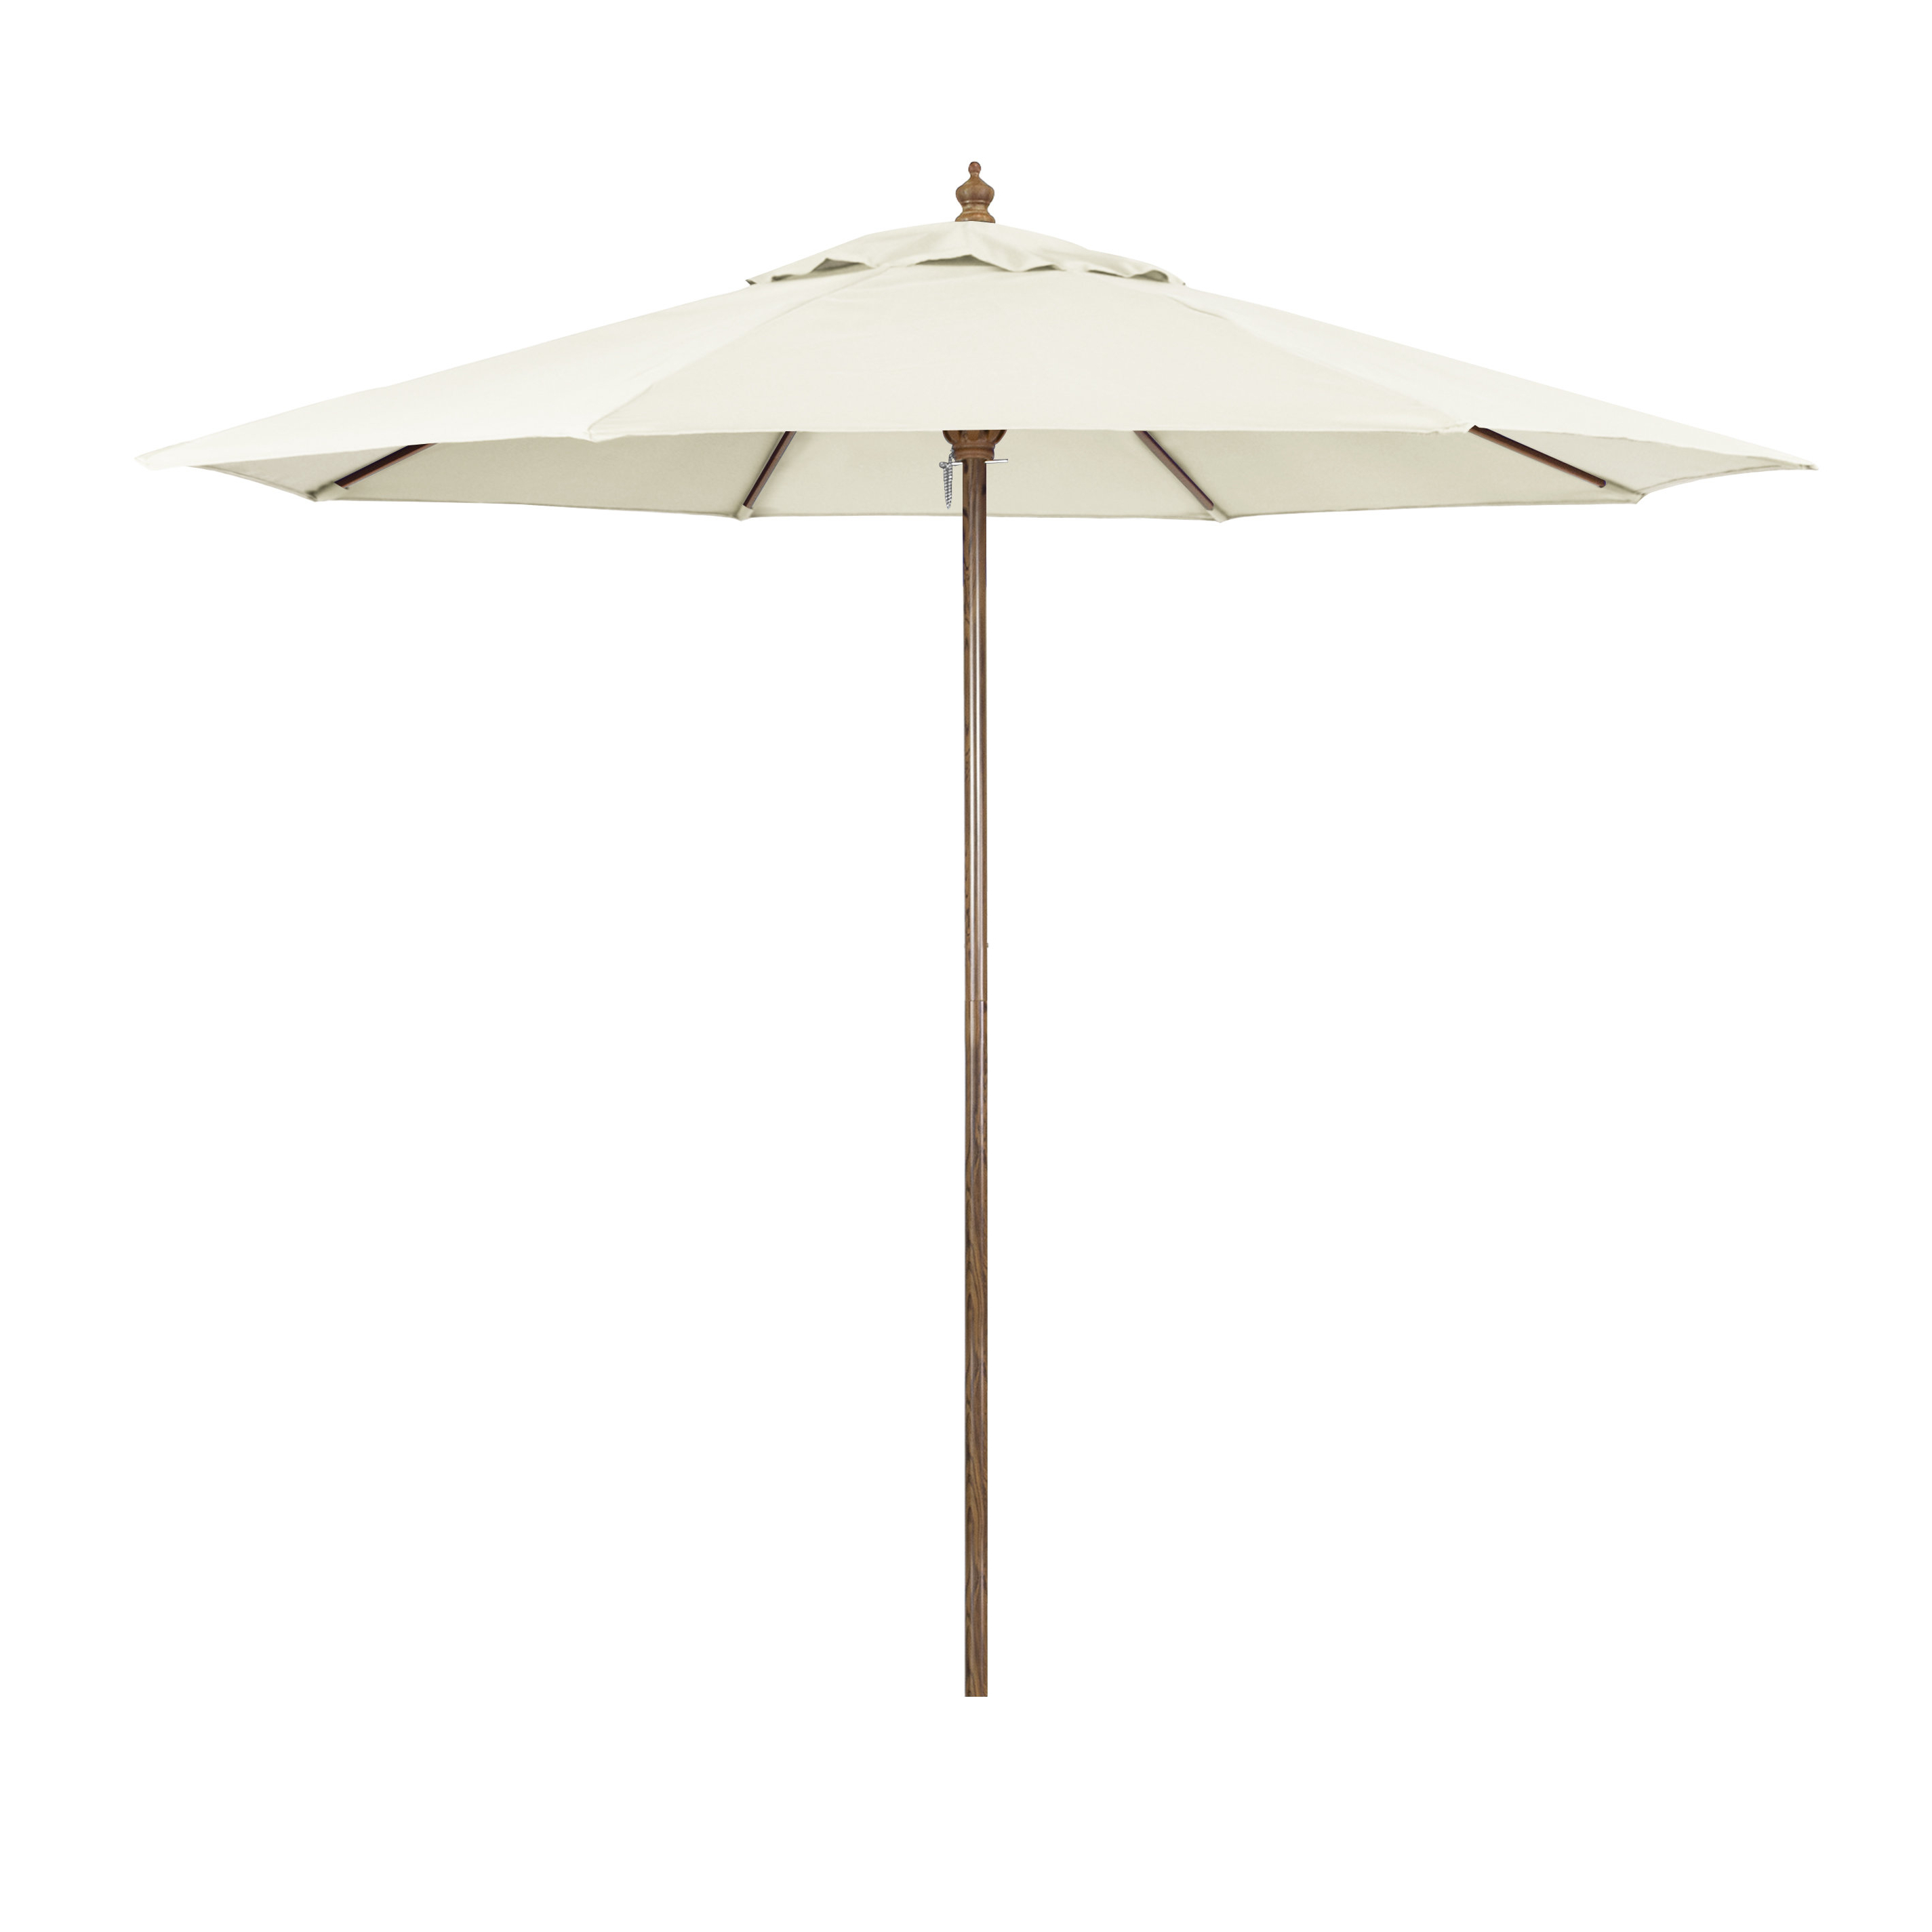 Ryant Market Umbrellas In Most Up To Date Ryant 9' Market Umbrella (Gallery 1 of 20)